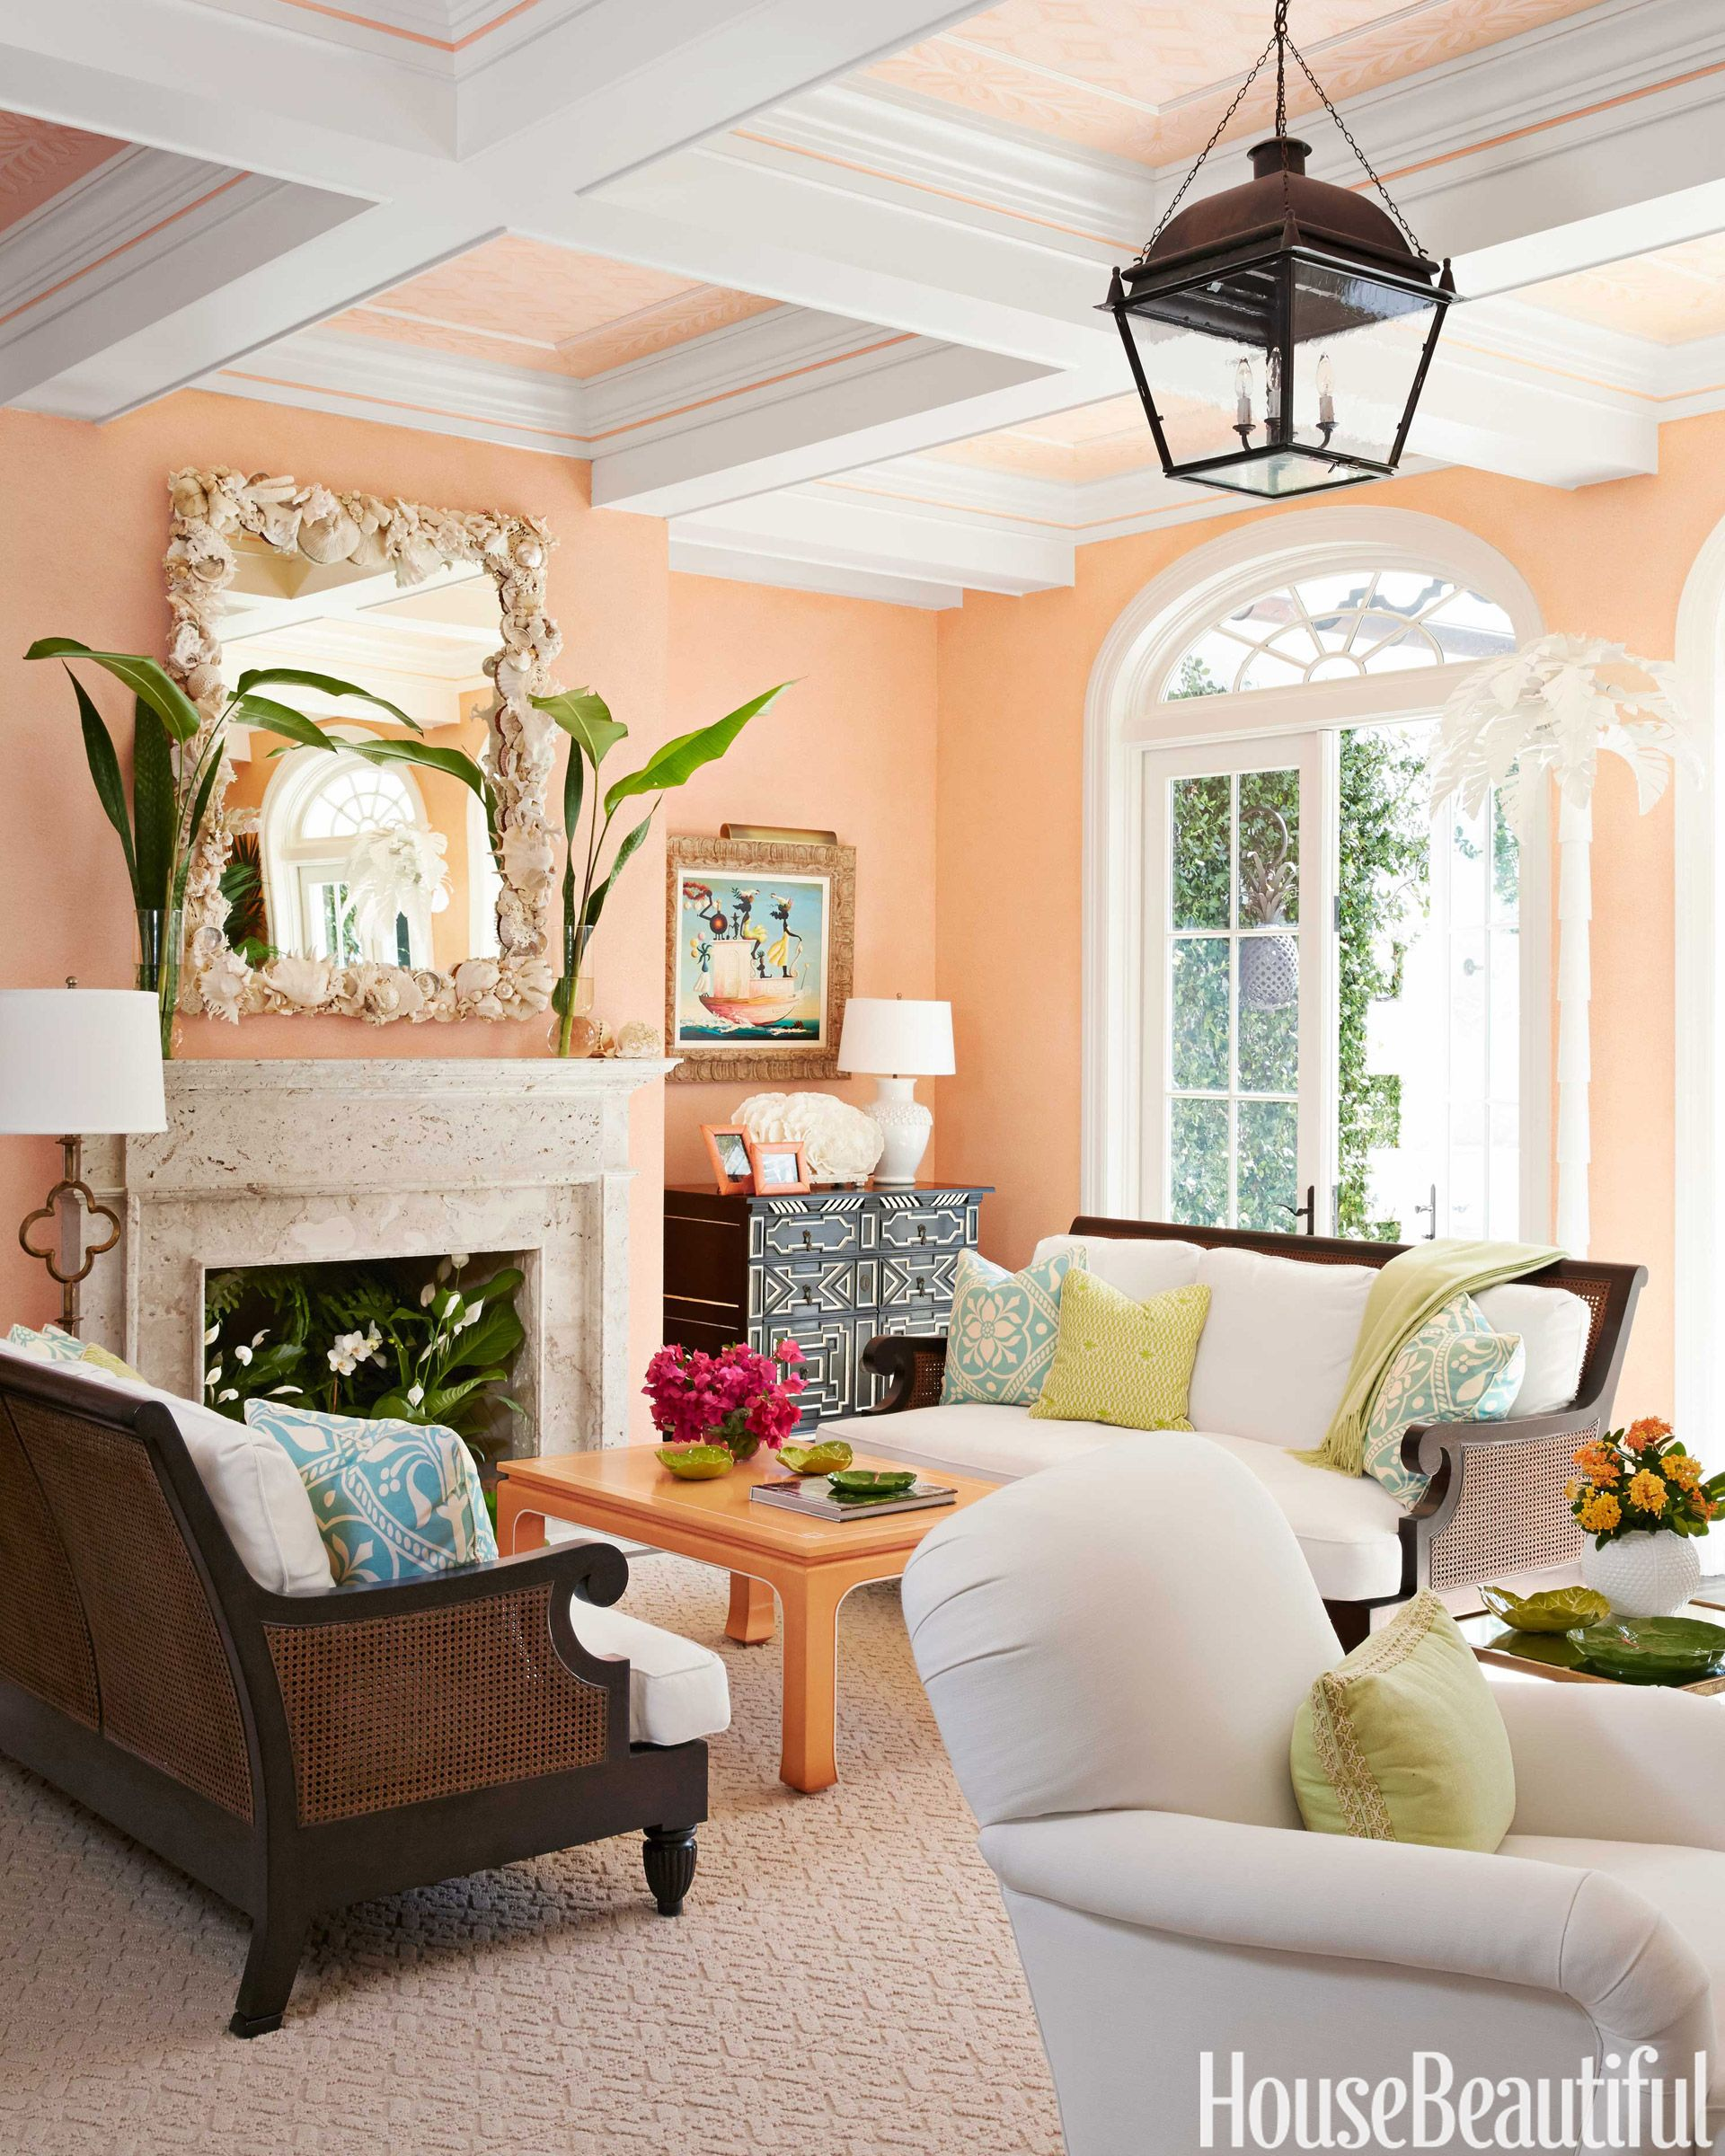 Mimi McMakin And Ashley Sharpe On Decorating A Whimsical Palm Beach House